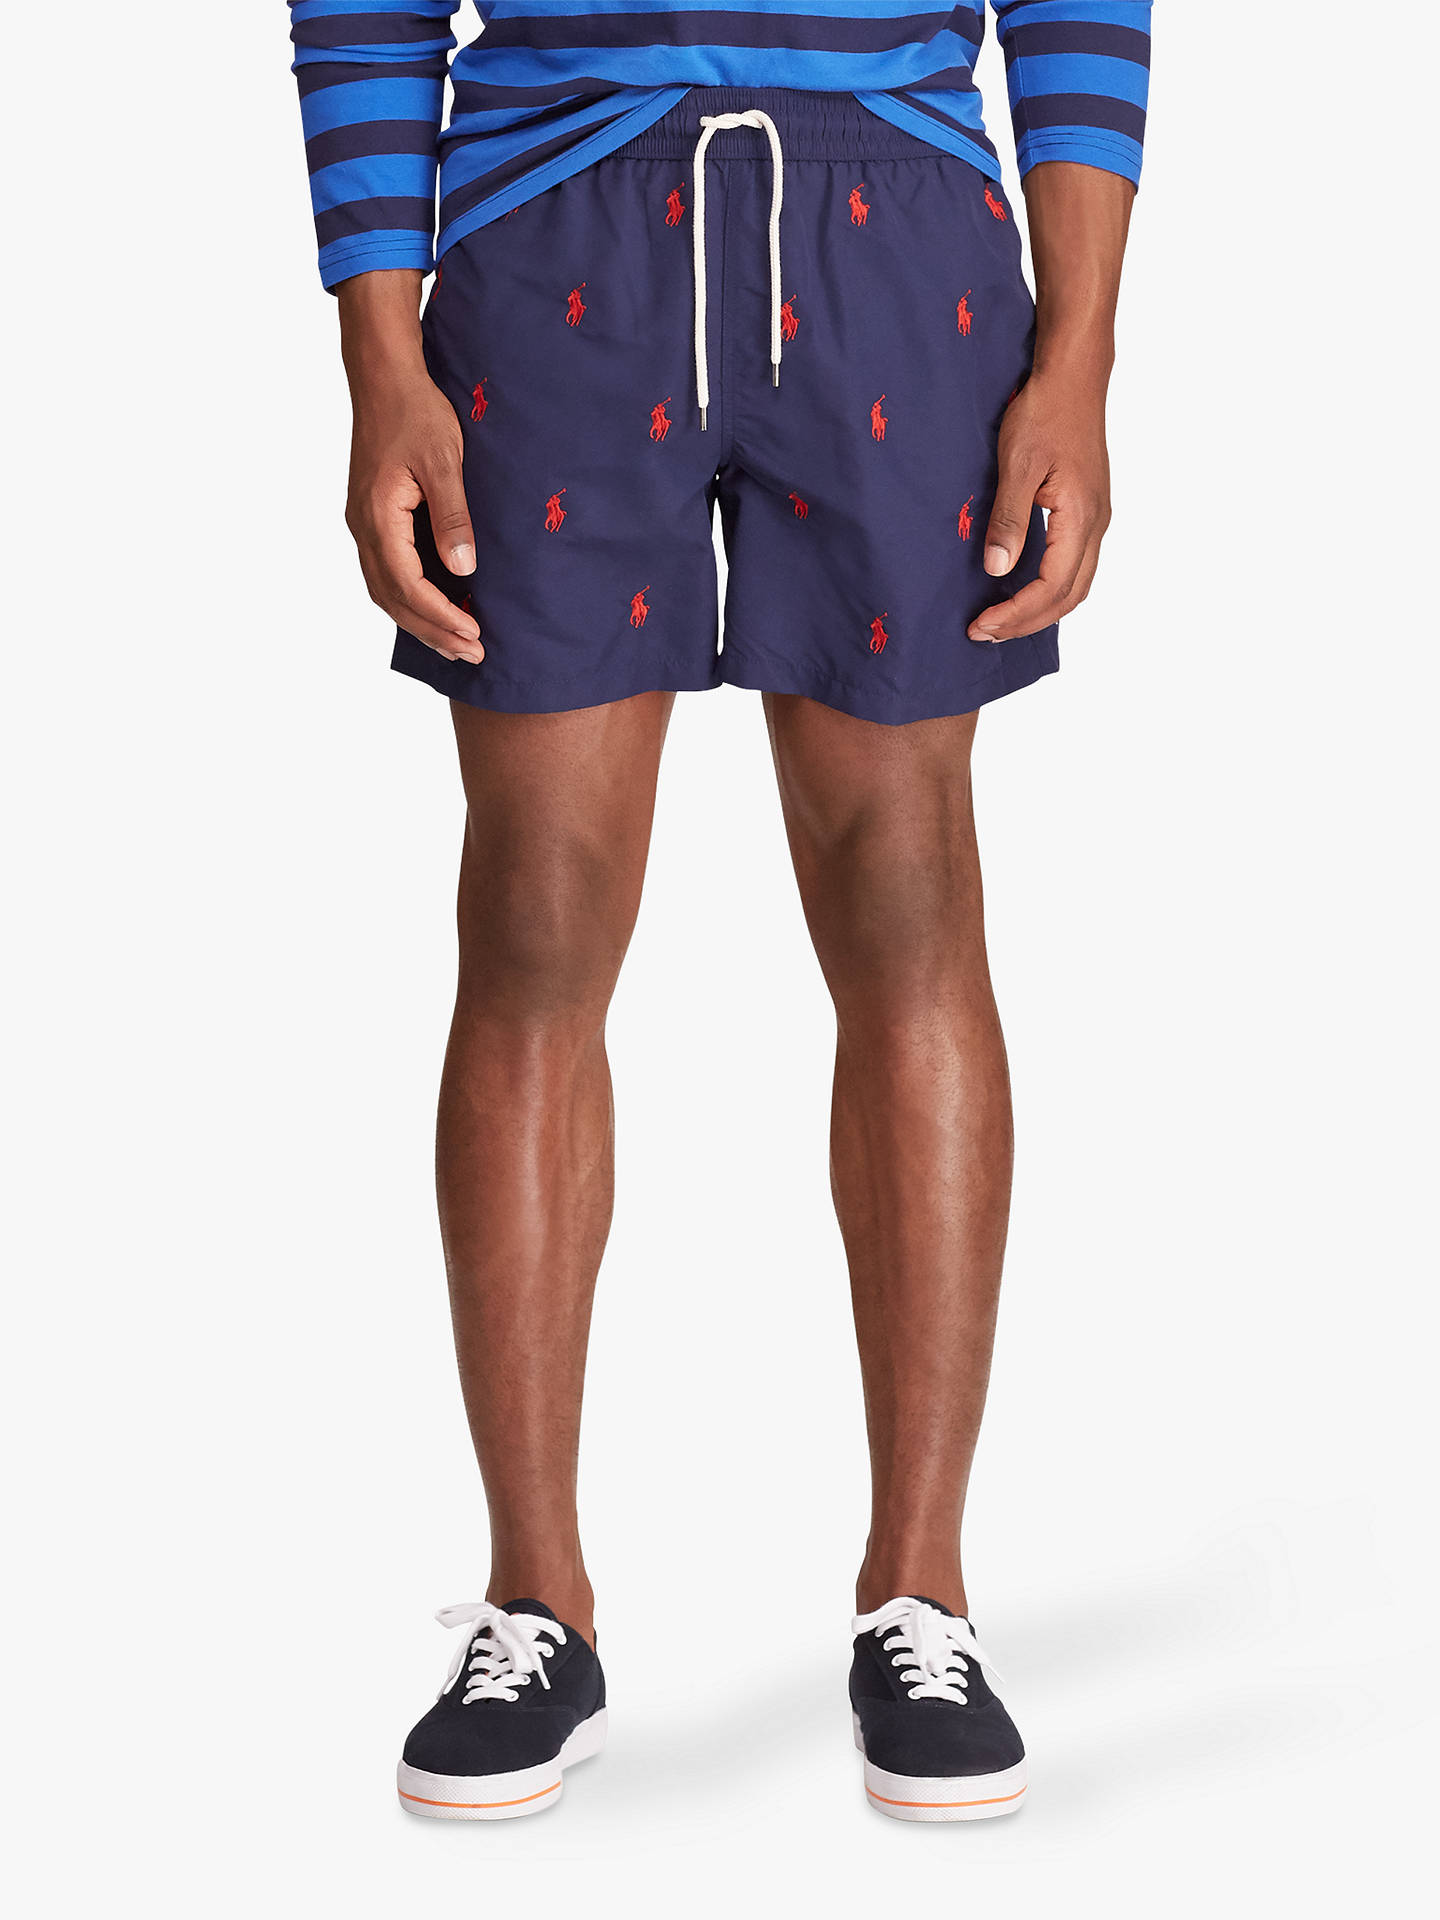 ddfd64edfd Buy Polo Ralph Lauren Pony Embroidery Swim Shorts, Navy, M Online at  johnlewis.